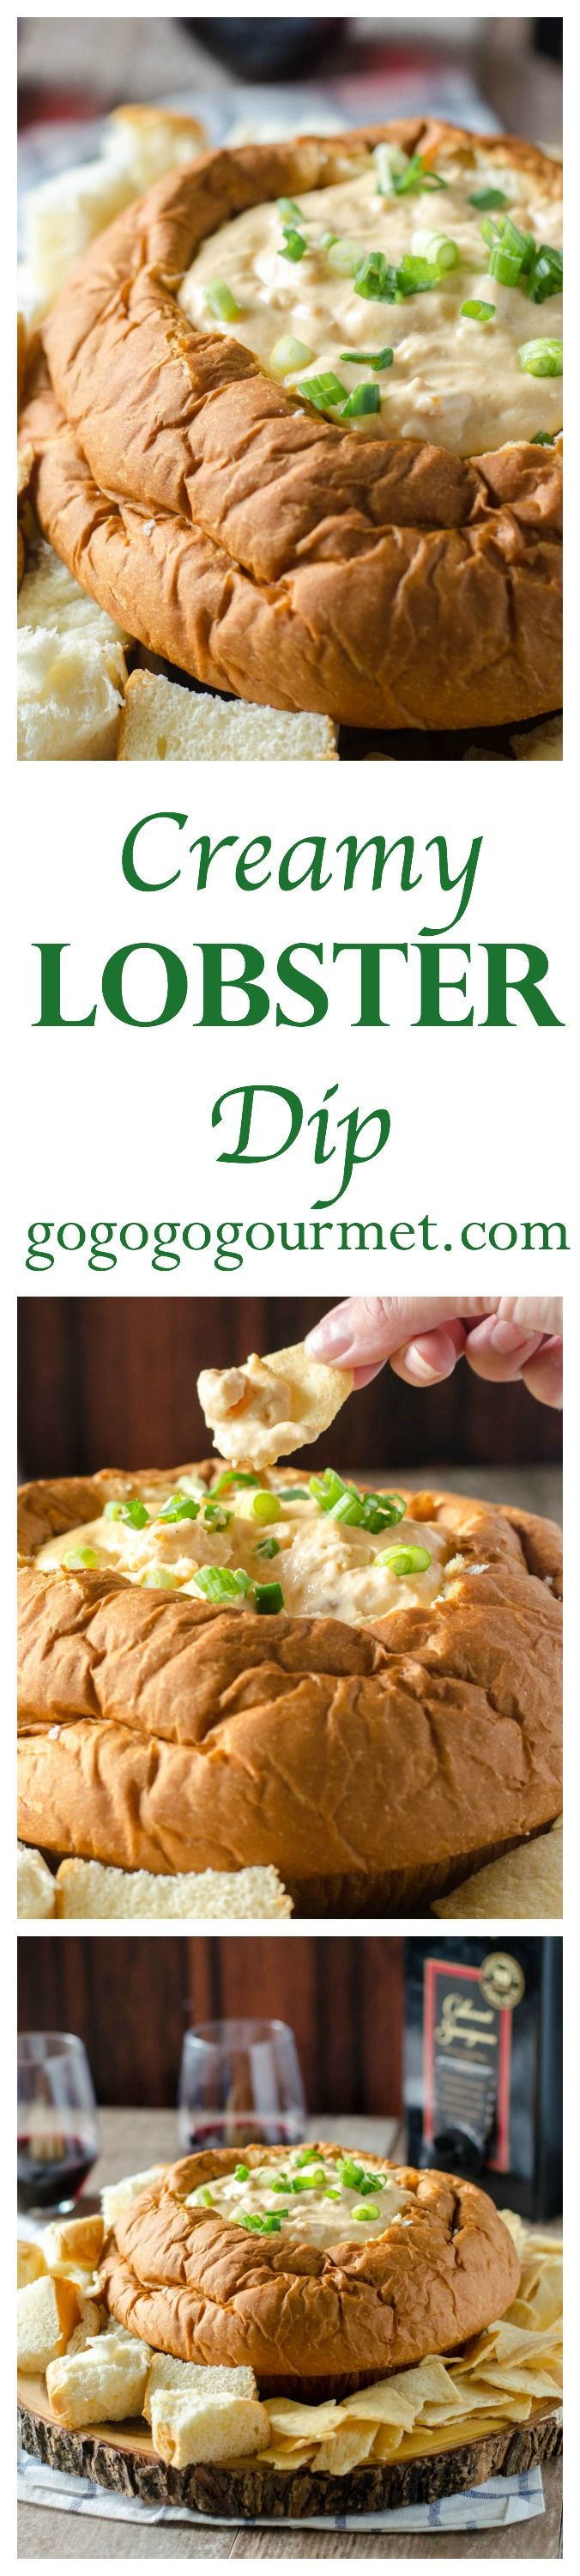 Msg 4 21+ A super short ingredient list and a crockpot make this luscious party dip an absolute breeze! Creamy Lobster Dip | Go Go Go Gourmet @gogogogourmet #ad #GameDayParty